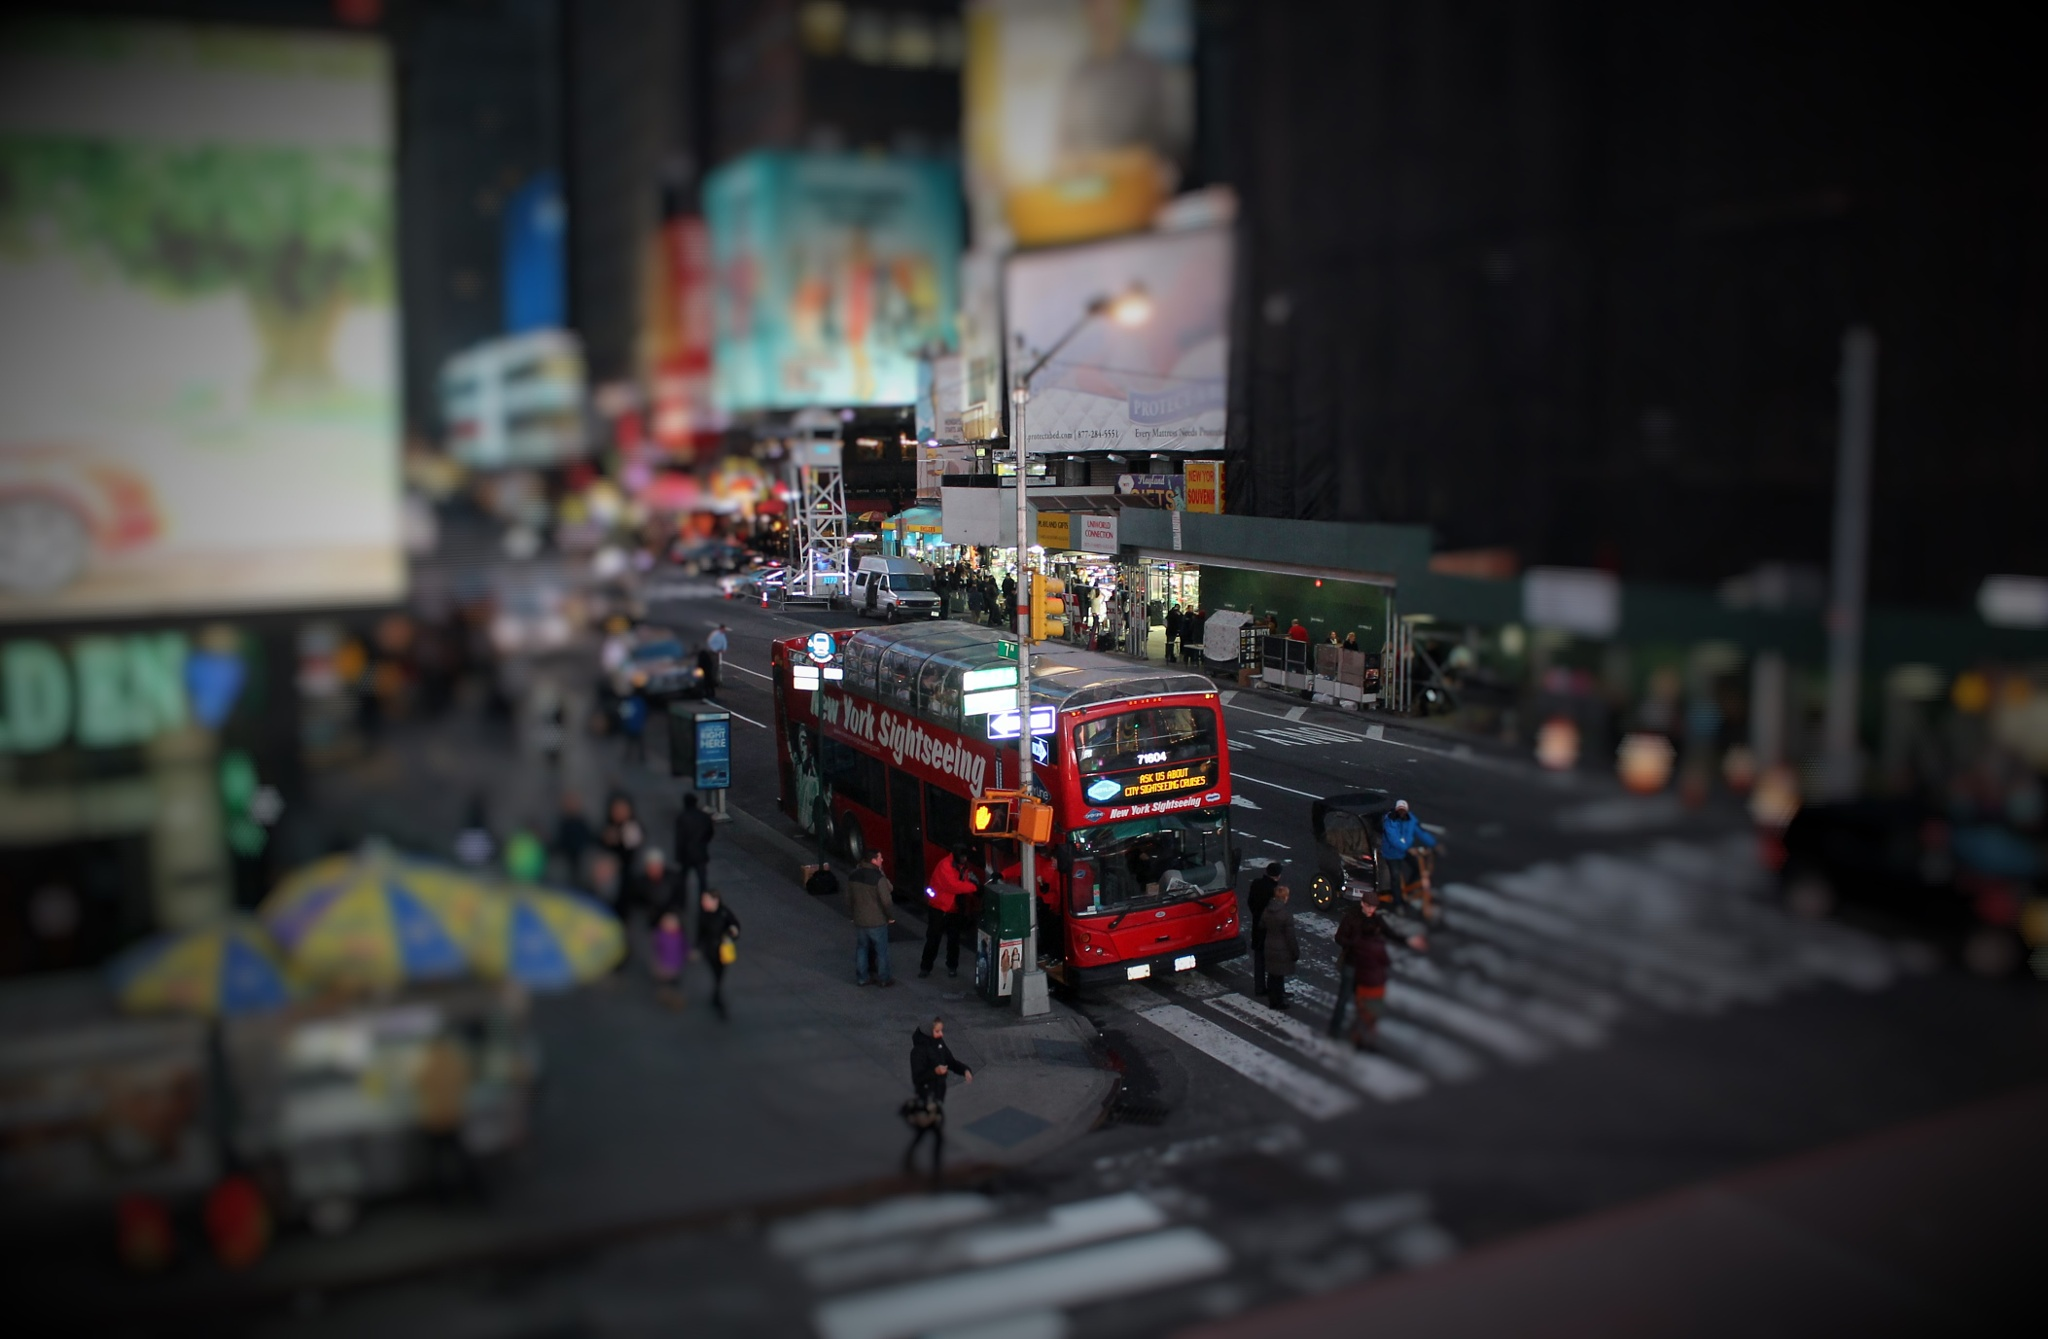 New York Sightseeing on Times Square, by Liborio Drogo